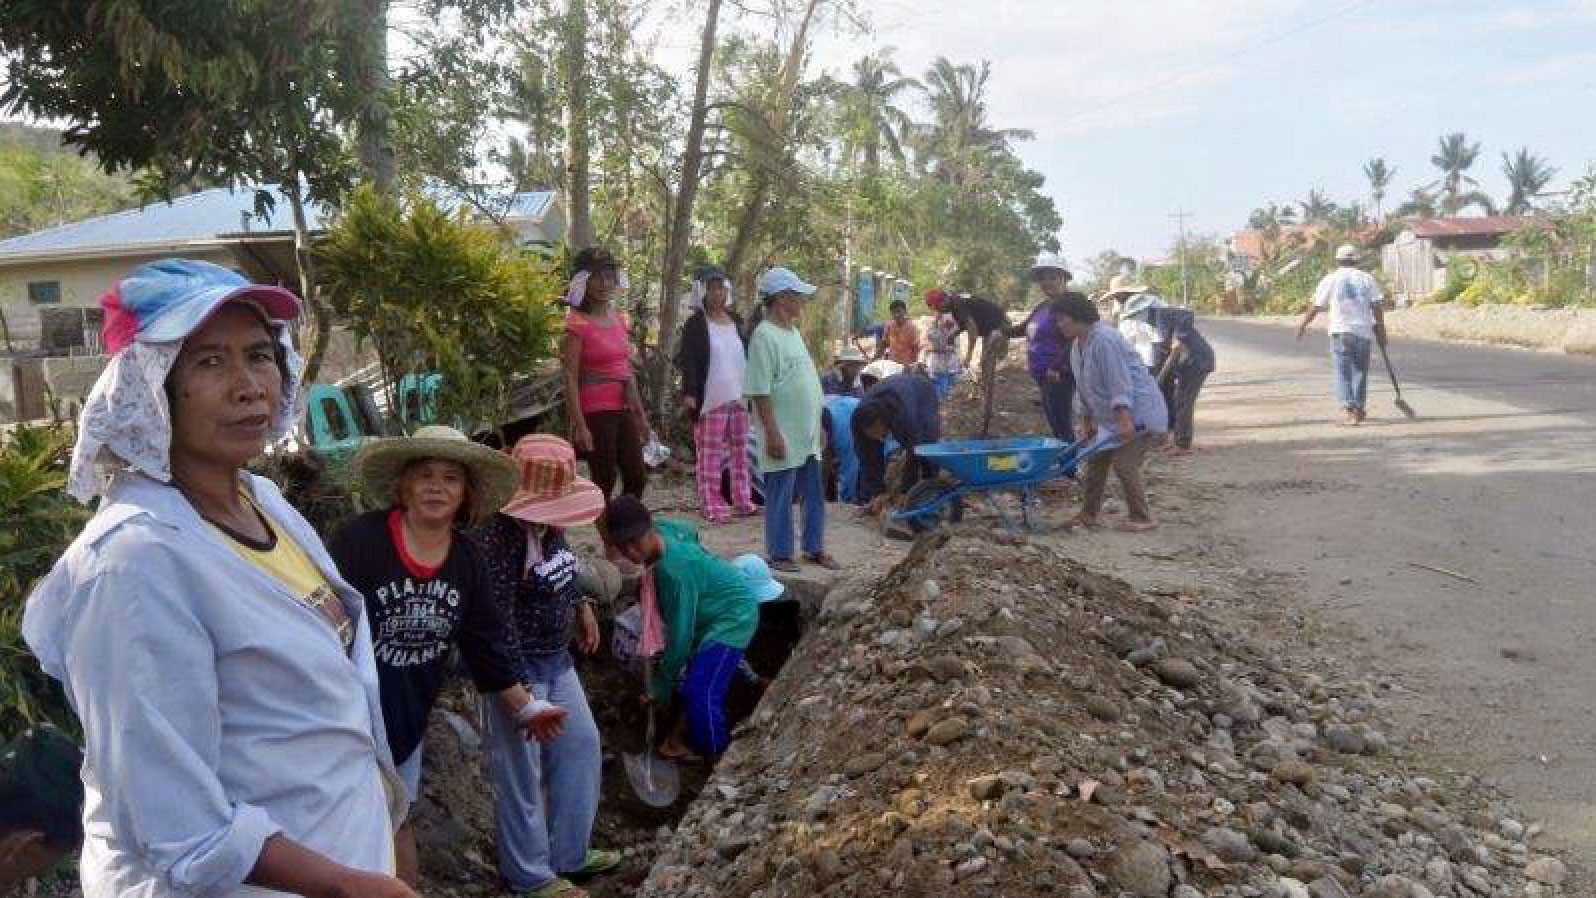 Philippines | Strengthening ties and clearing debris following Typhoon Mankghut